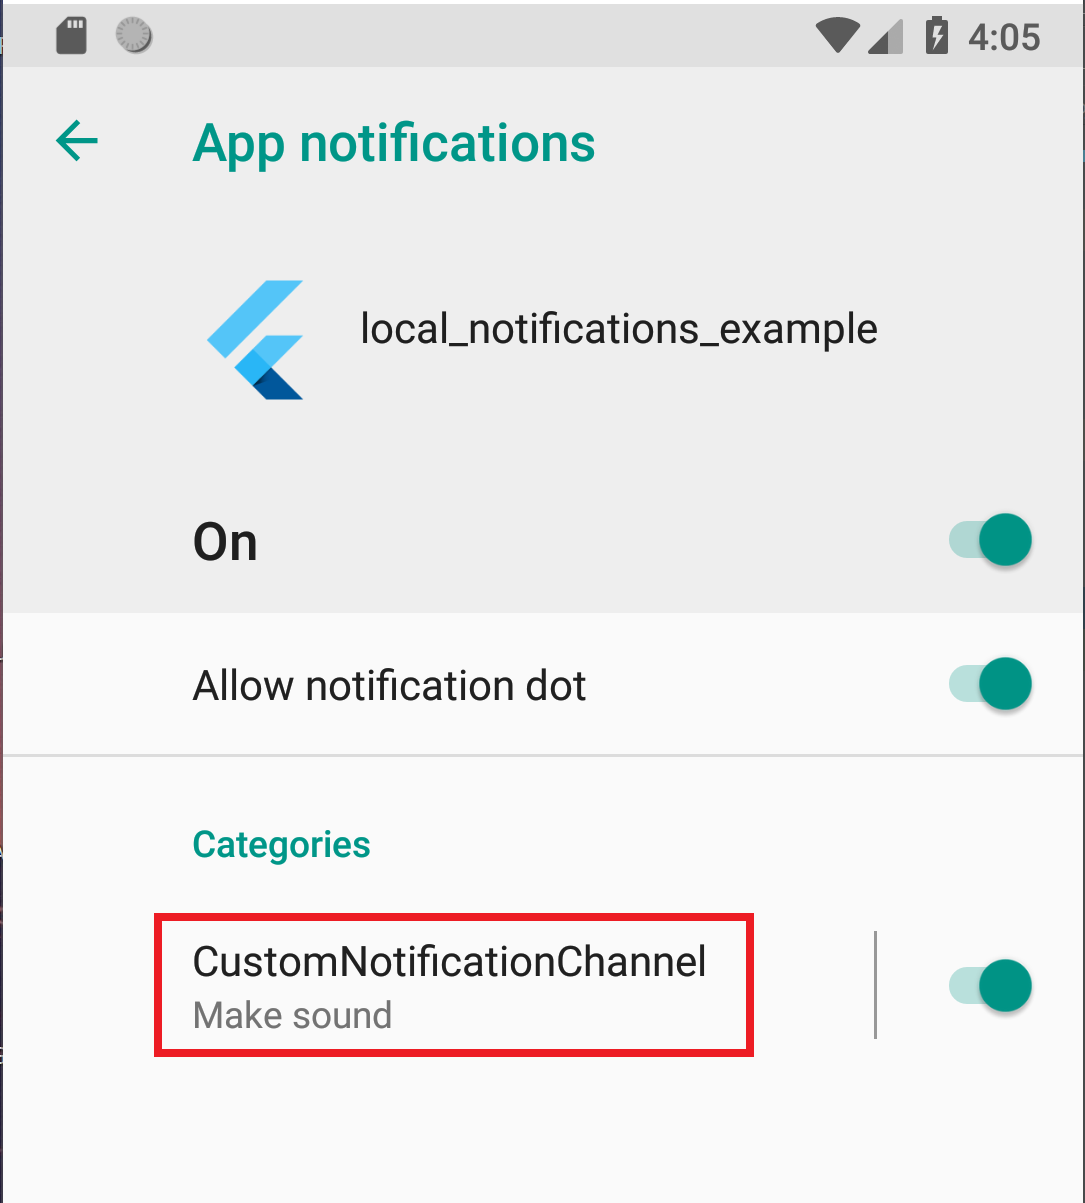 Android Notifications not showing, iOS showing correctly